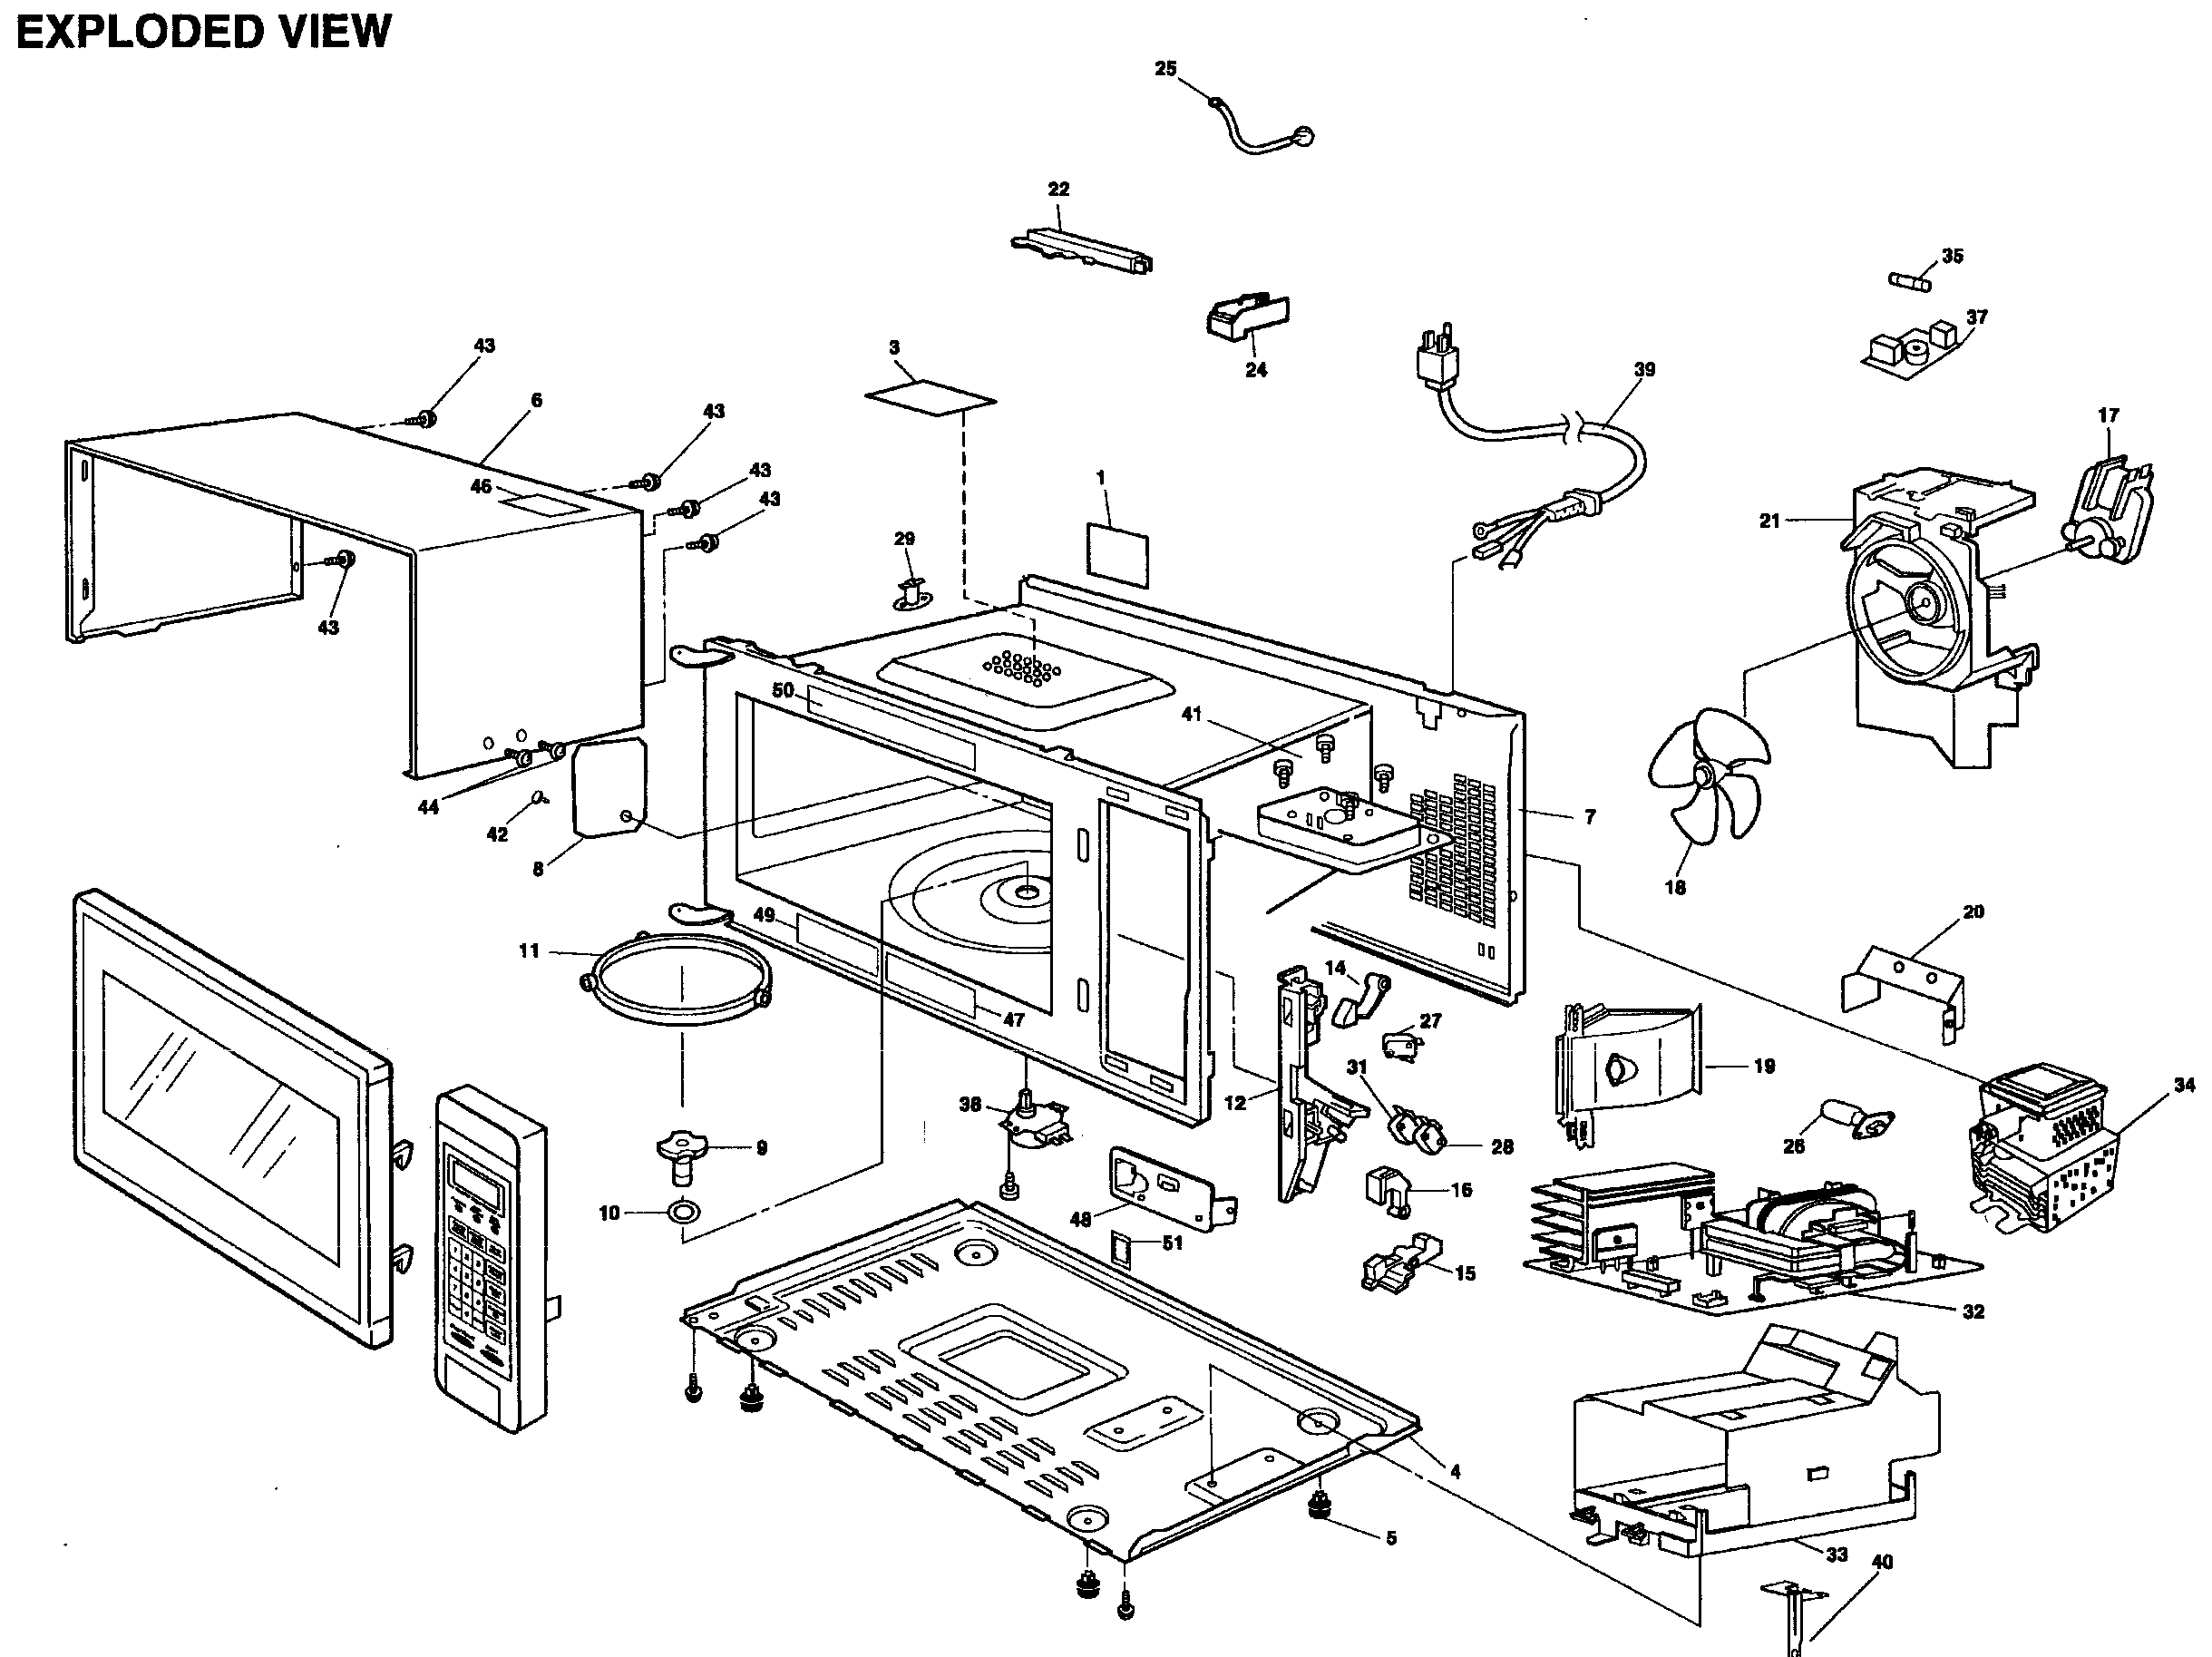 EXPLODED VIEW Diagram & Parts List for Model NNSD997S